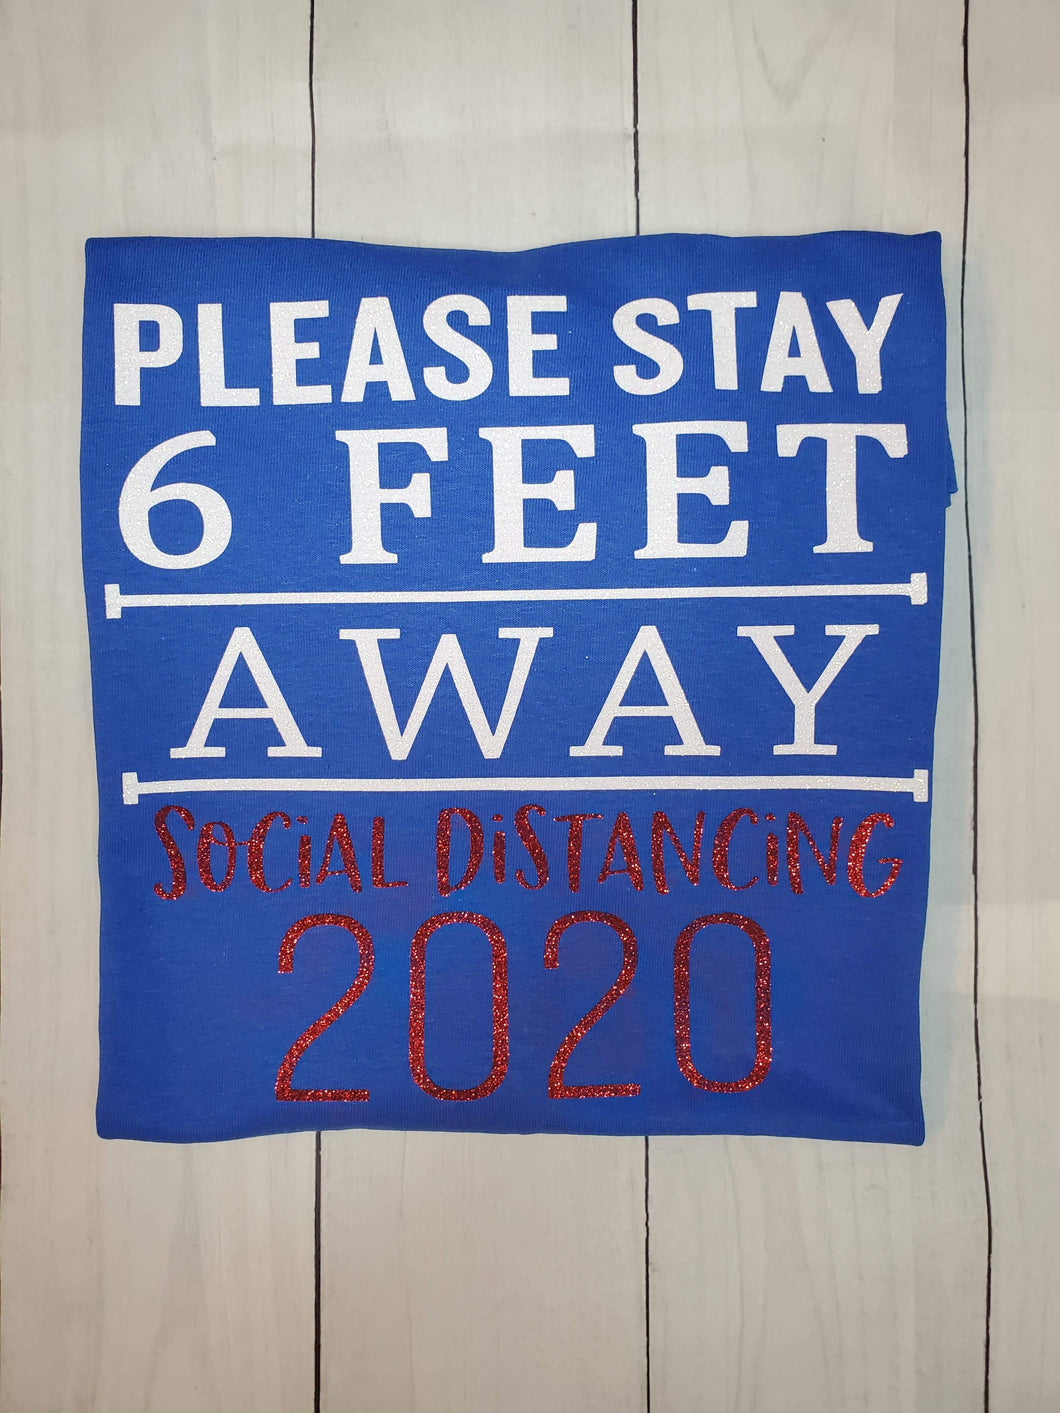 Please stay 6 feet away shirt